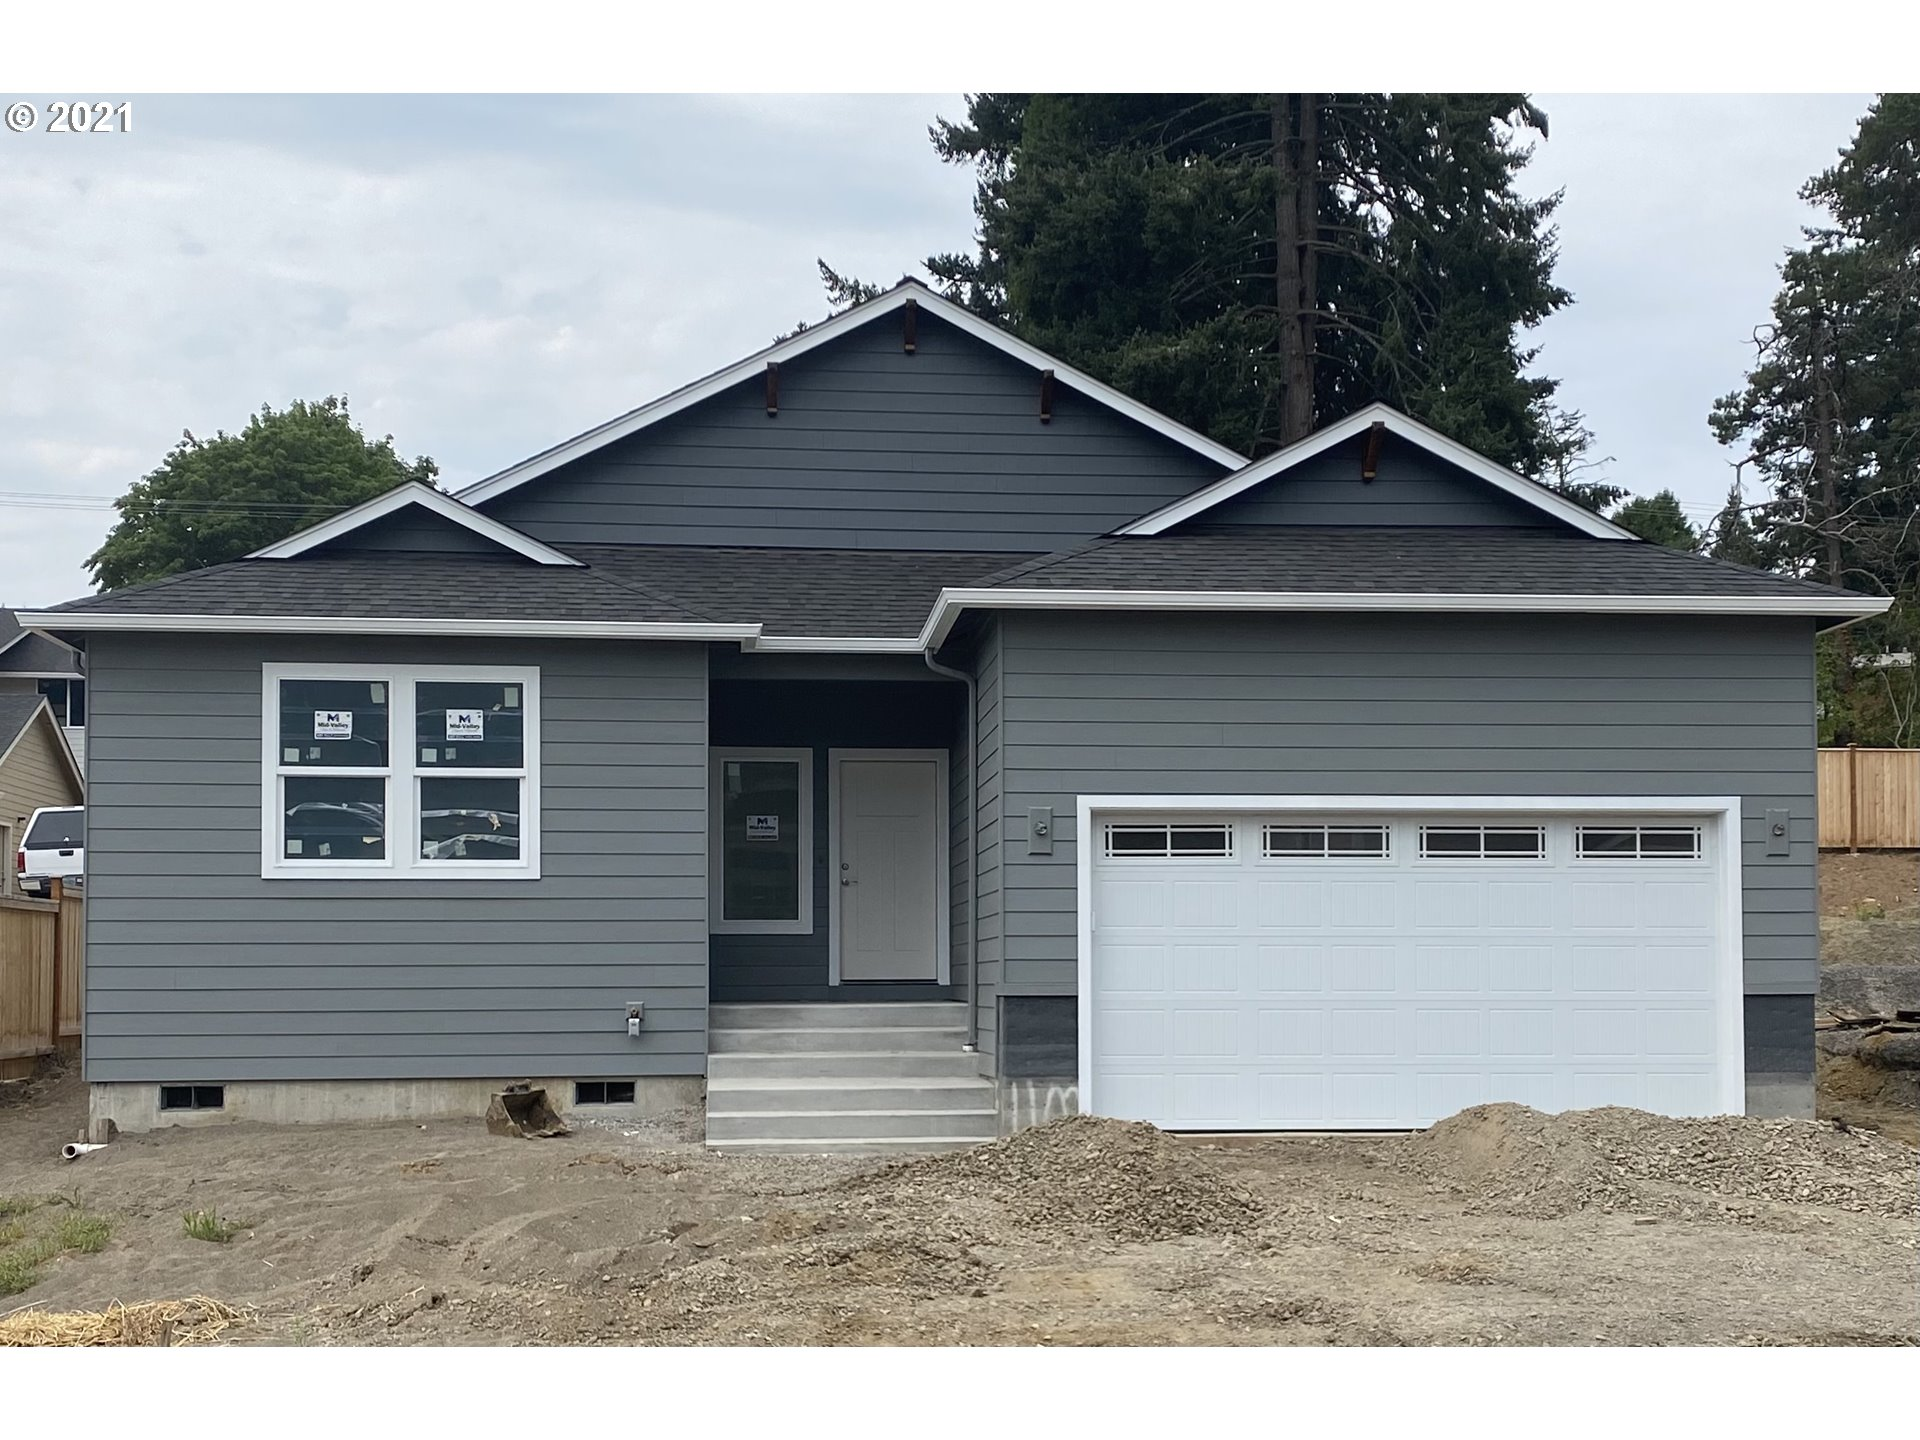 1102 S 57TH PL, Springfield OR 97478